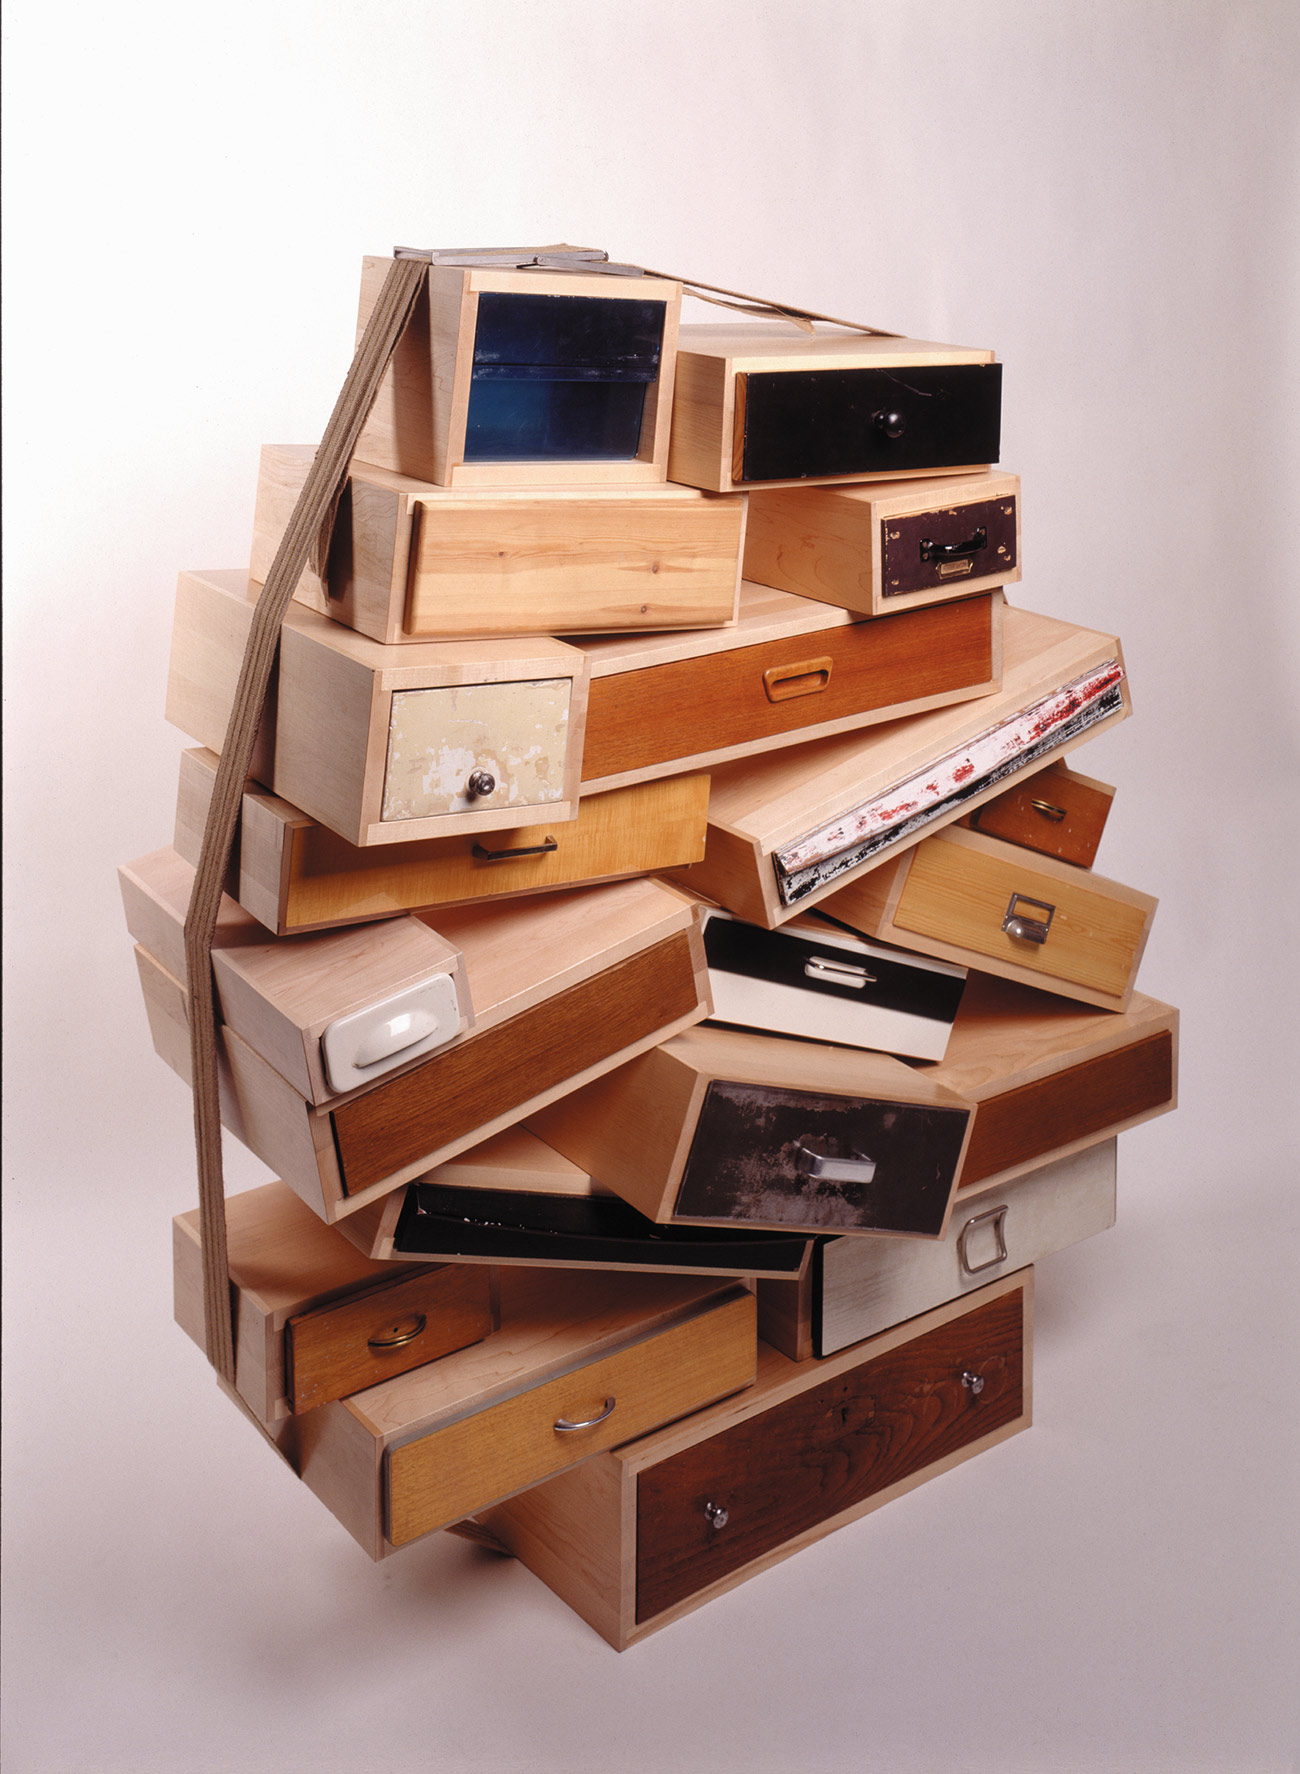 1991_ChestofDrawers